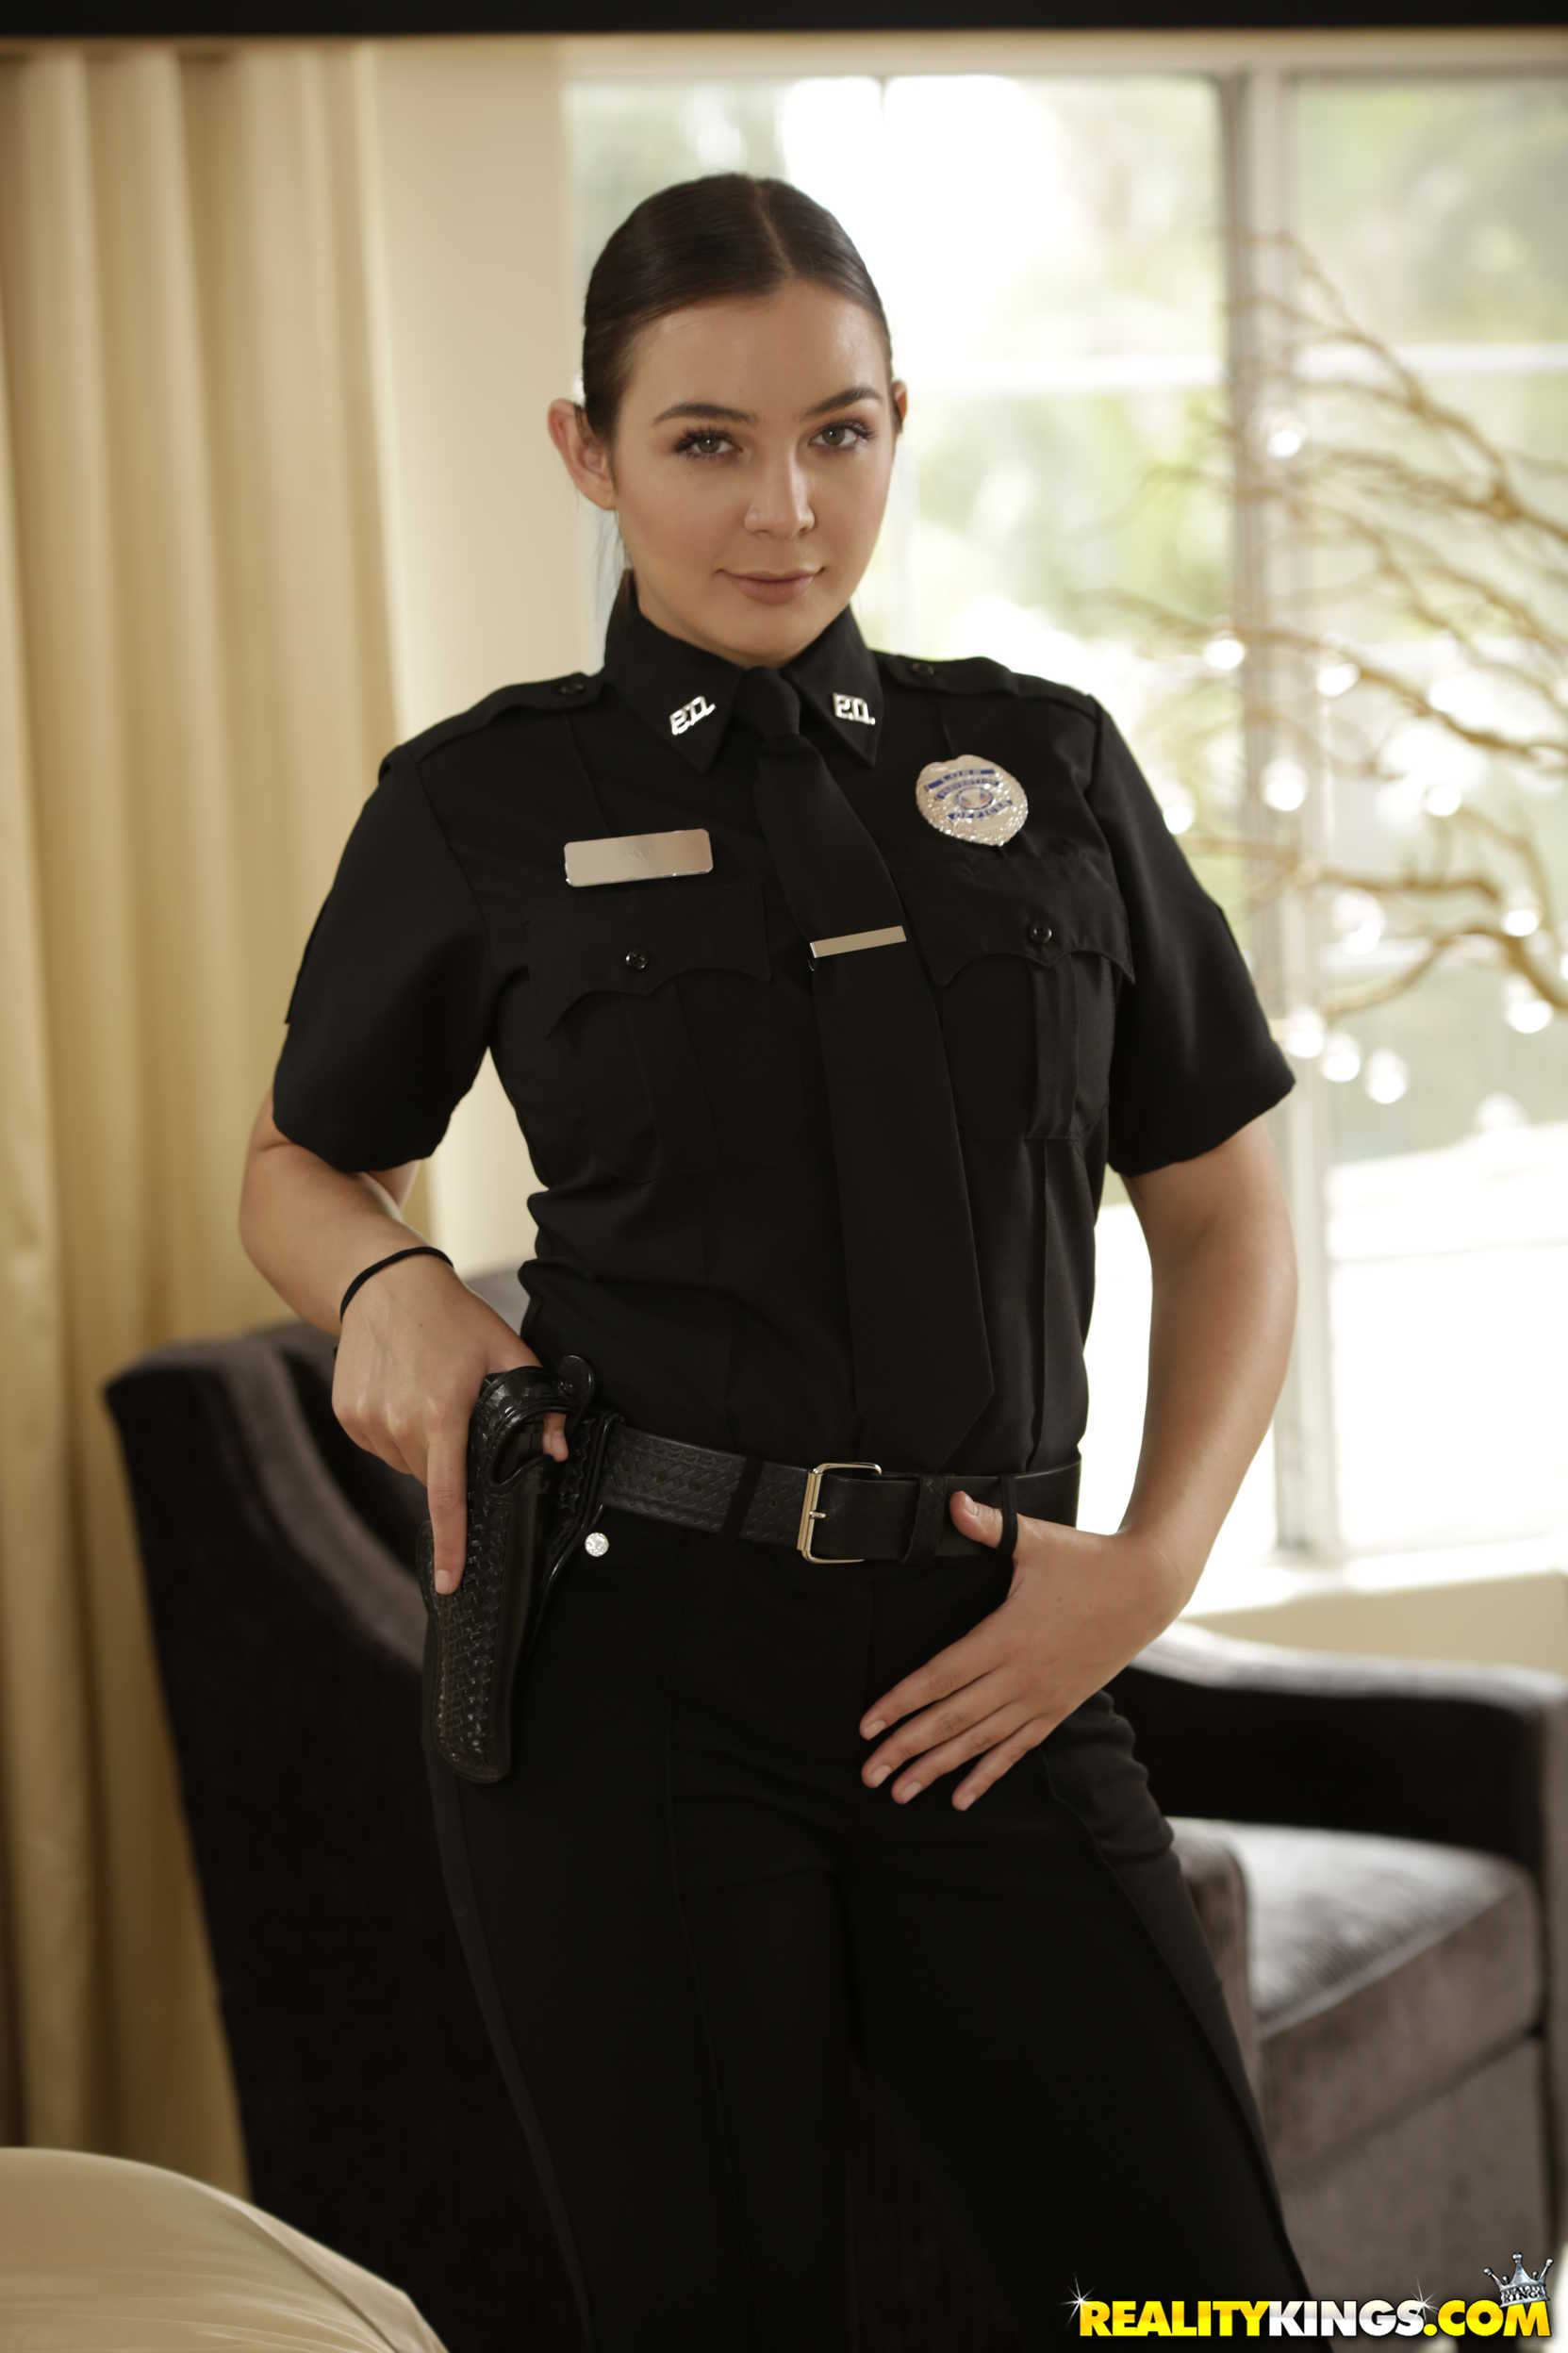 Reality Kings 'Two Cops In Heat' starring Blair Williams (Photo 1)